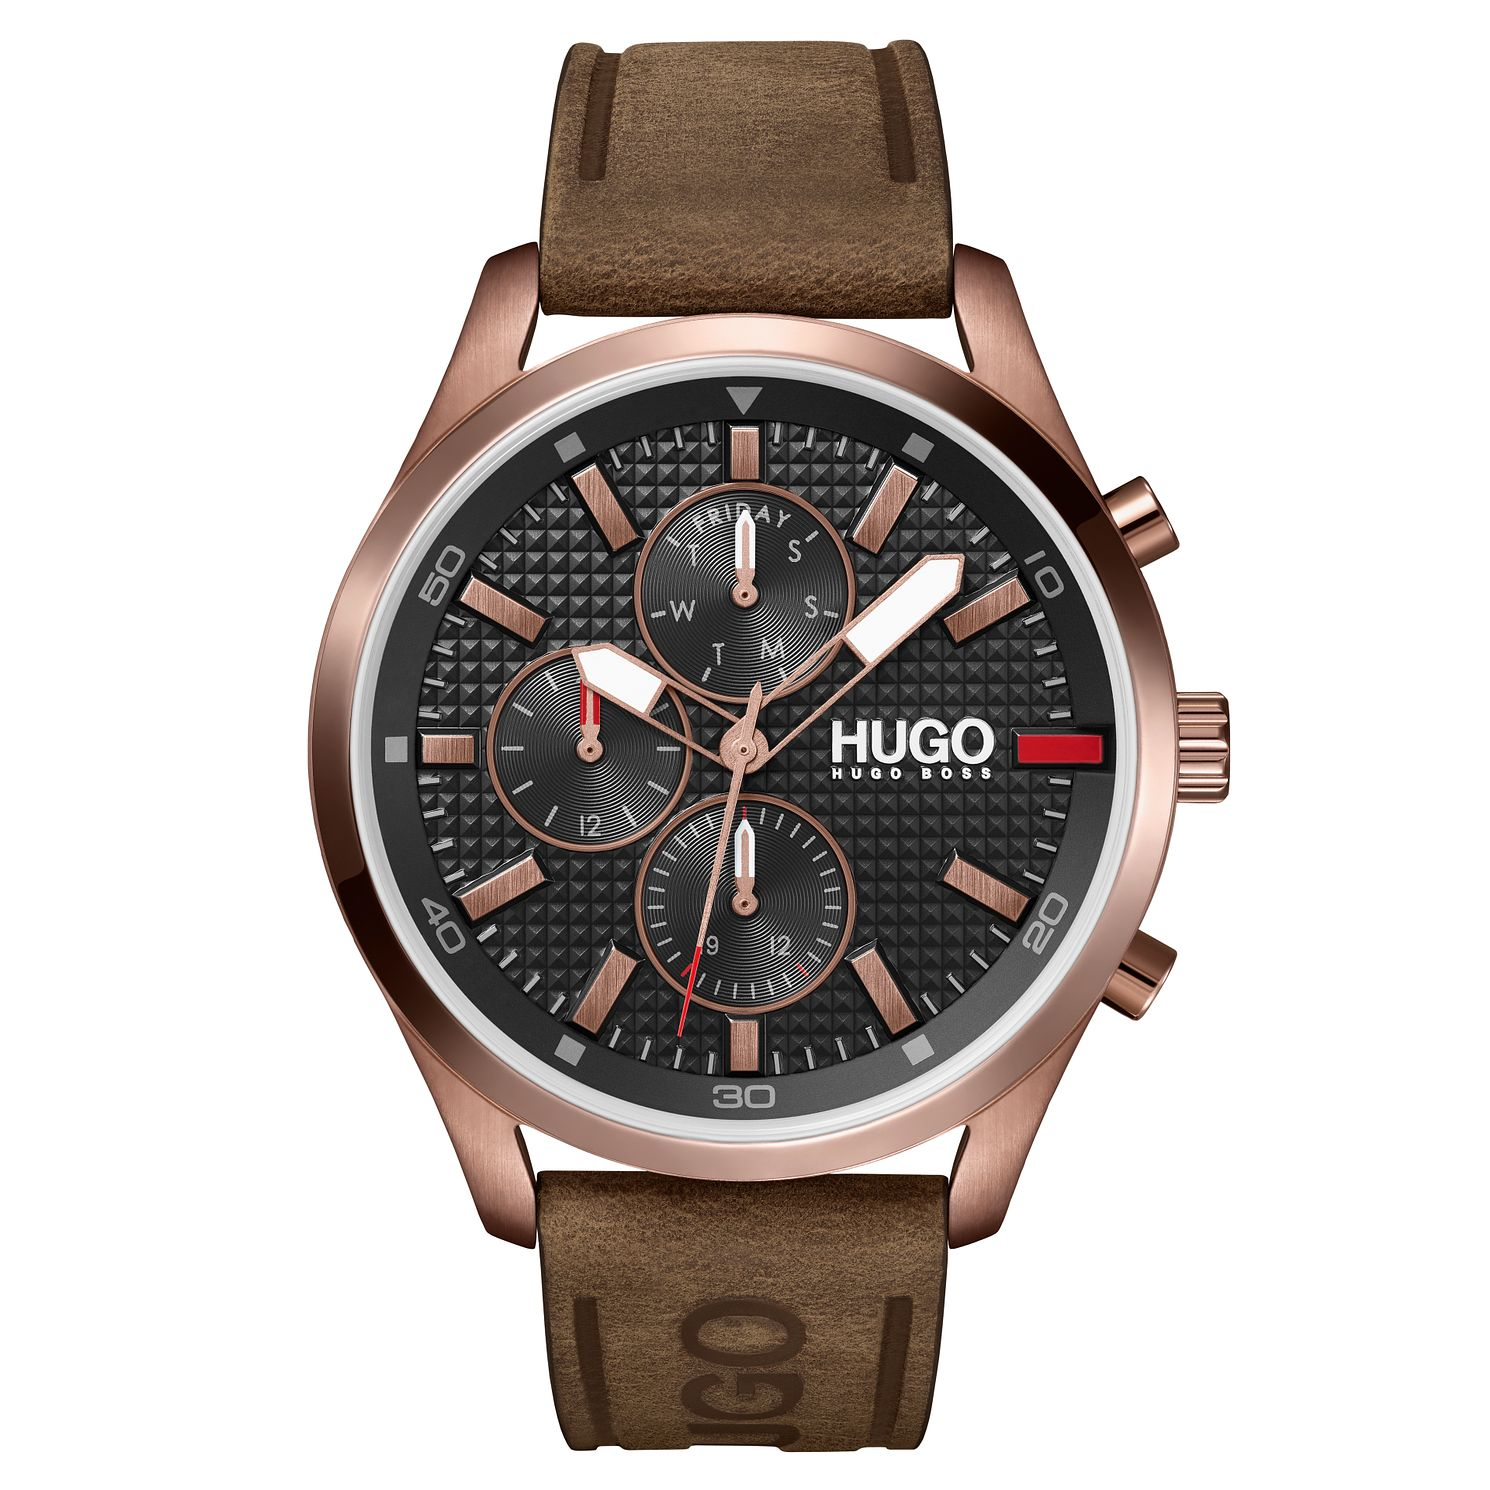 HUGO #CHASE Men's Brown Leather Strap Watch - Product number 1018000